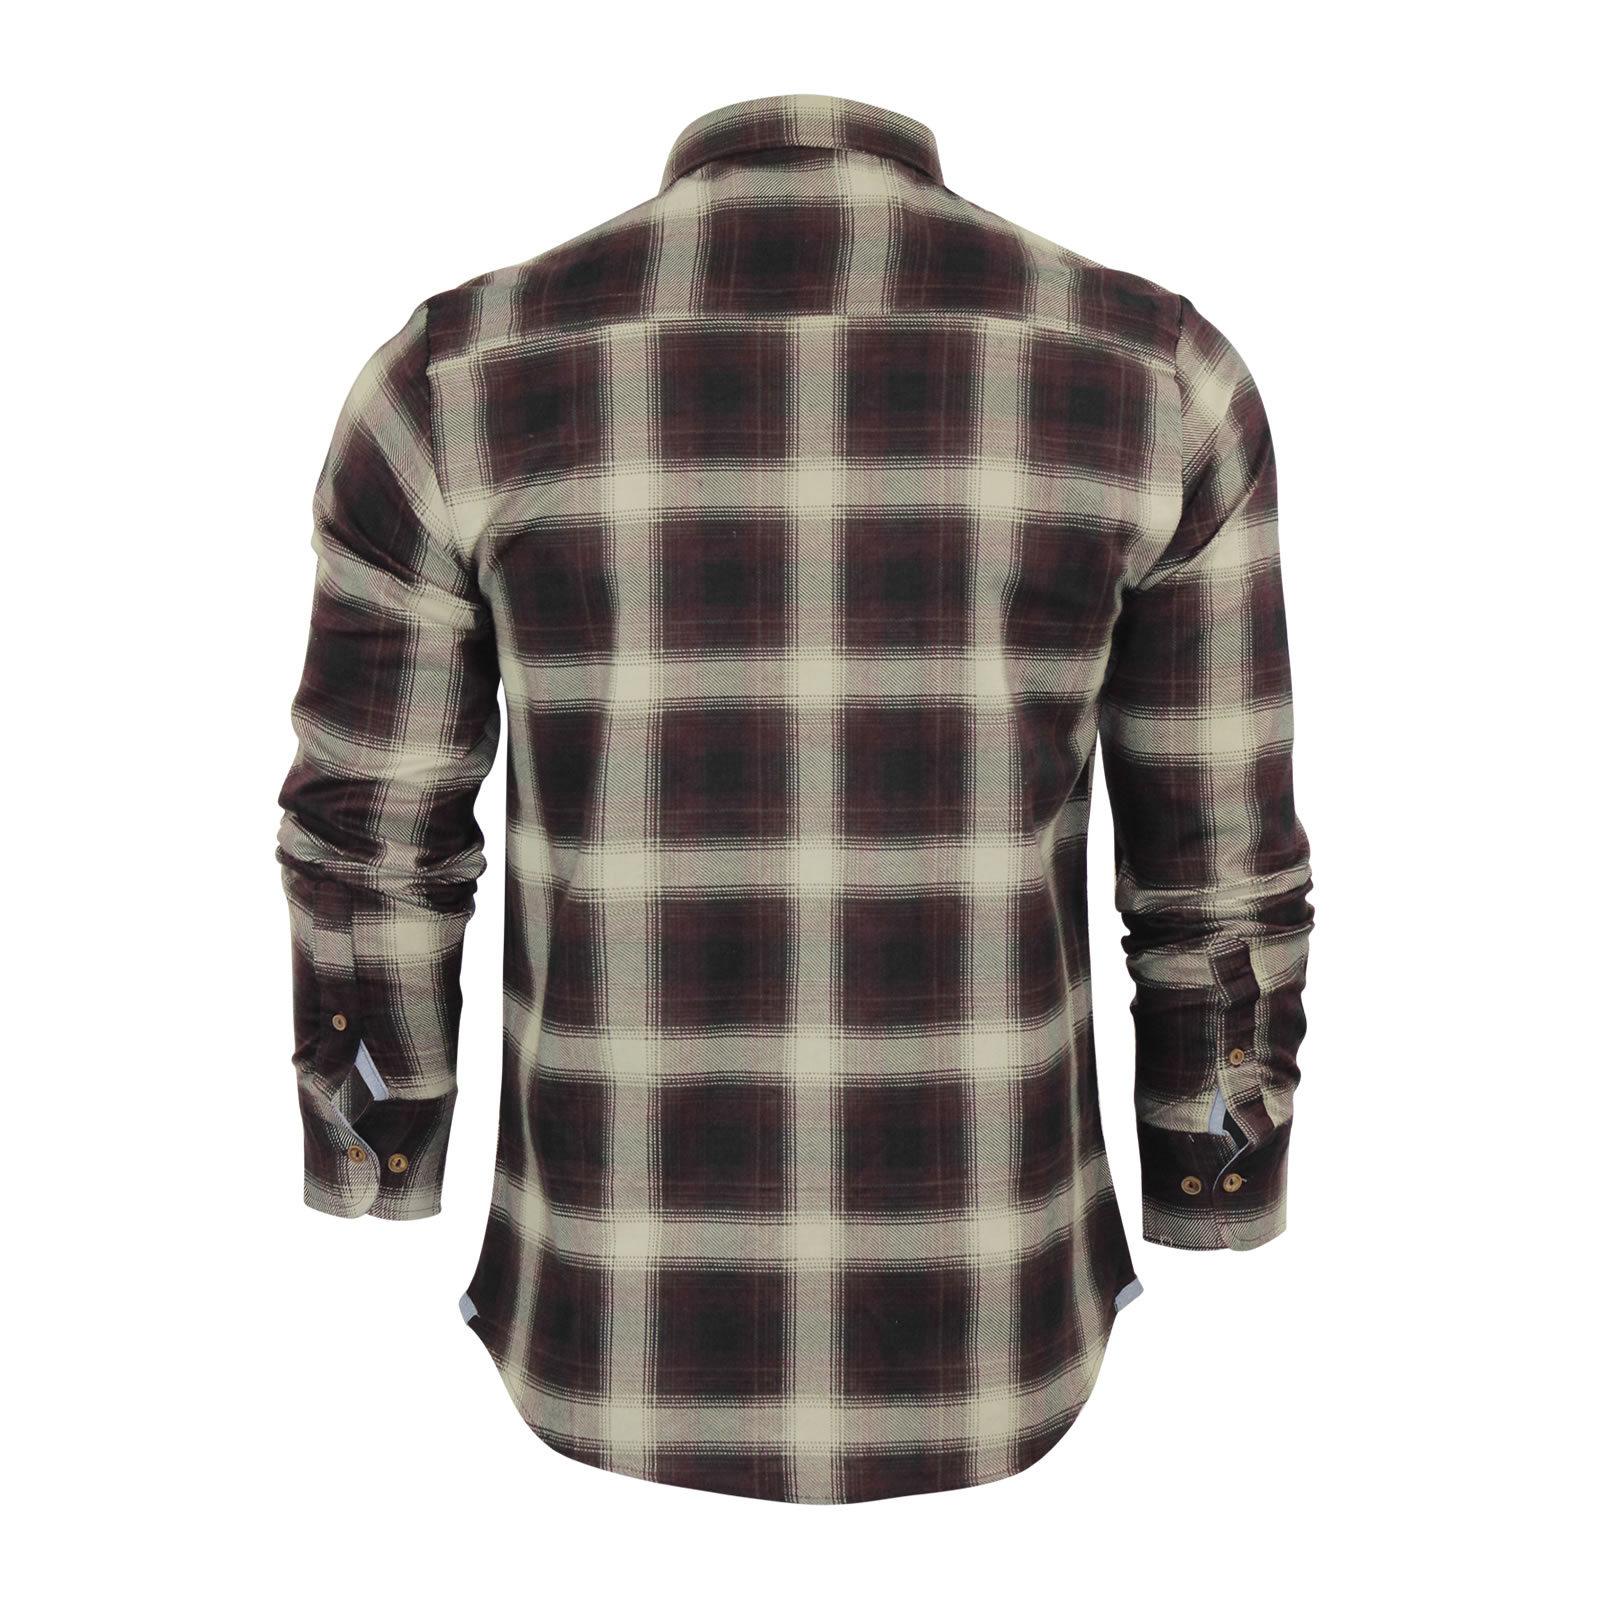 Mens Check Shirt Brave Soul Impala Flannel Brushed Cotton Long Sleeve Casual Top